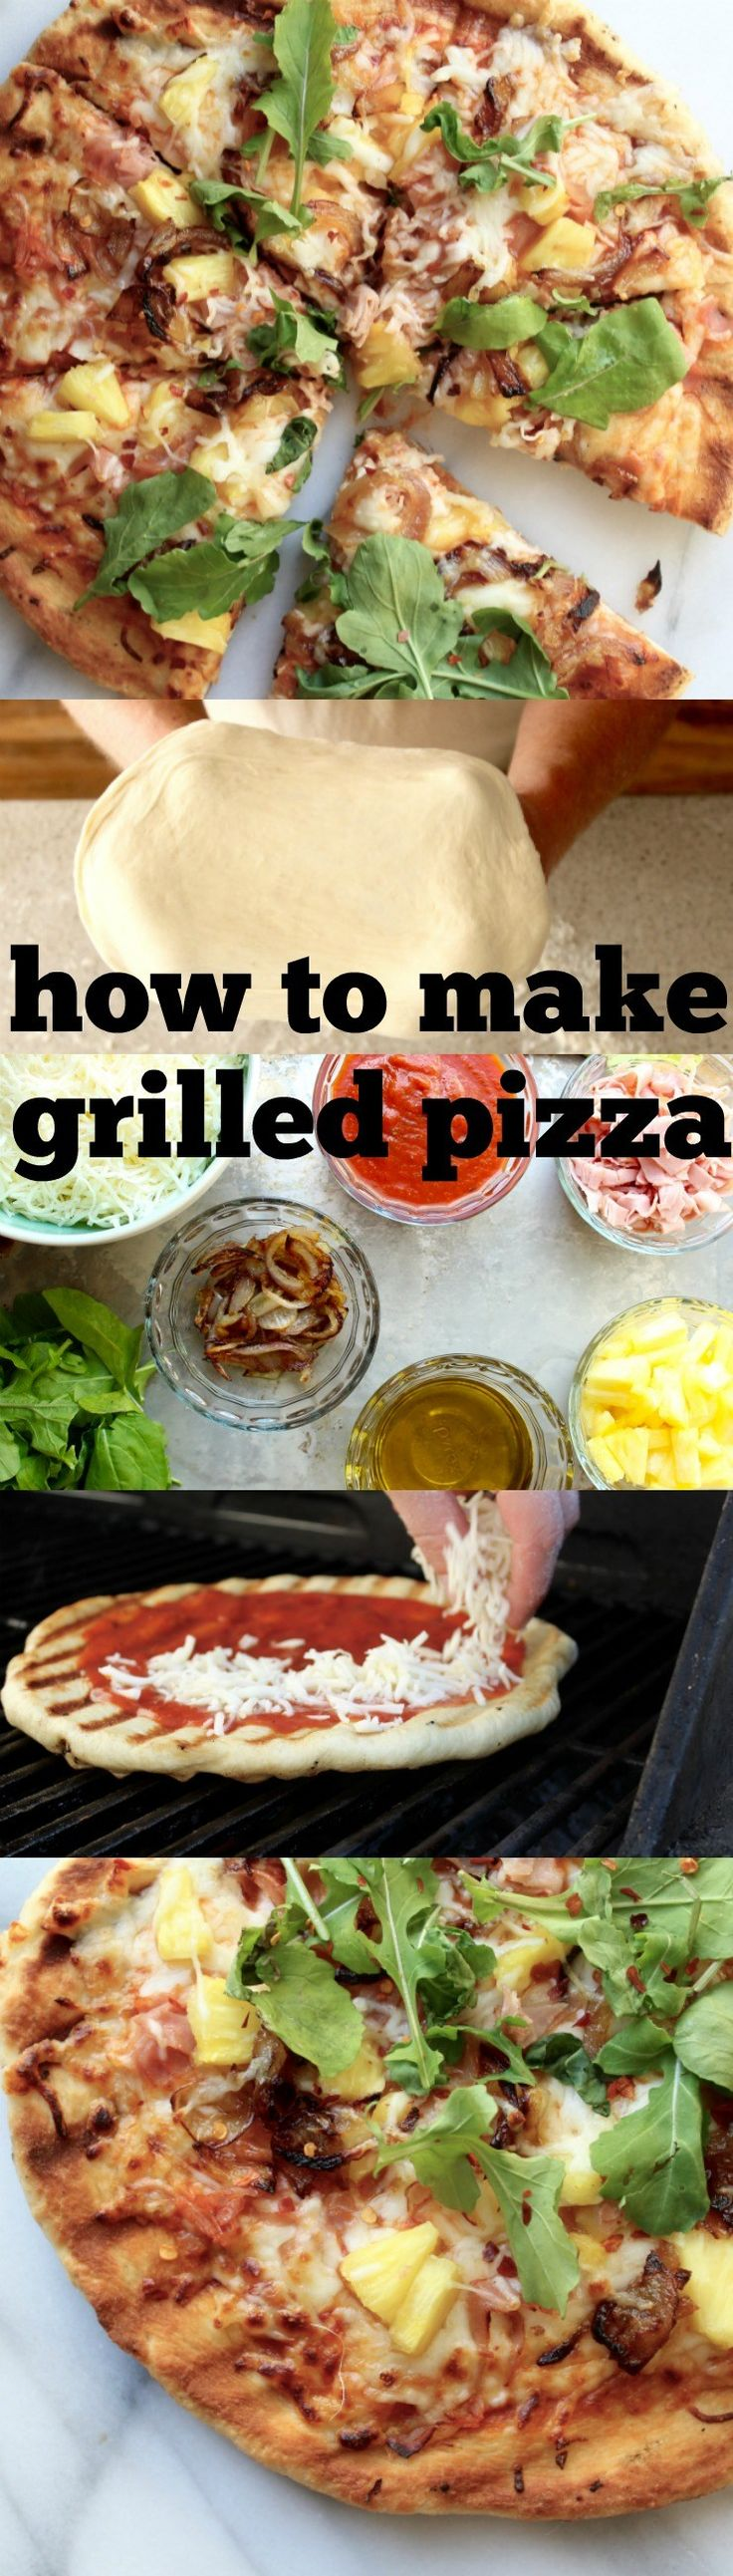 how to grill pizza. grilled pizza tips, tricks, tools, and toppings! #BeyondTheSandwich #ad @walmart